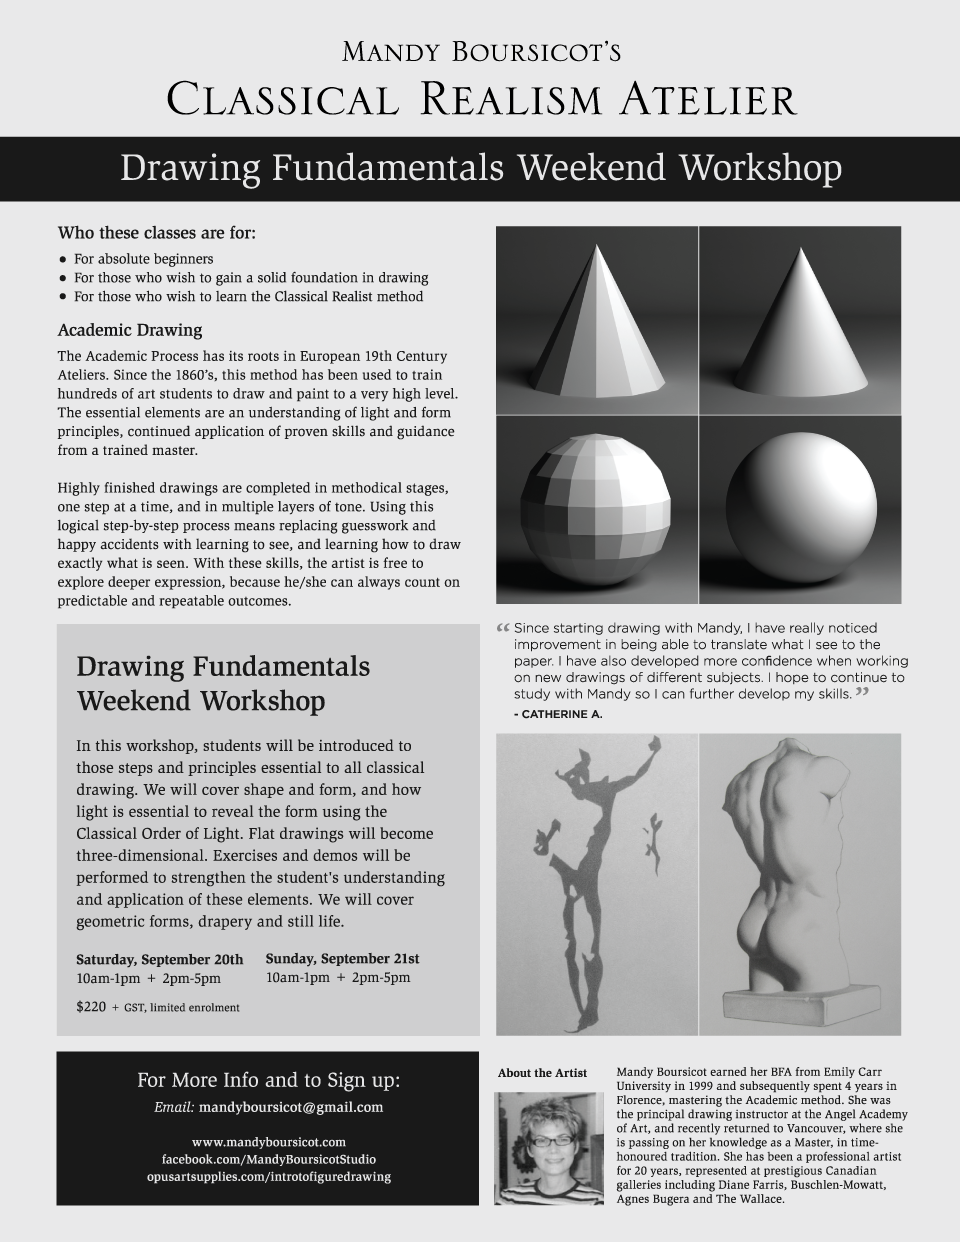 September 2014 Weekend Workshop:  Drawing Fundamentals